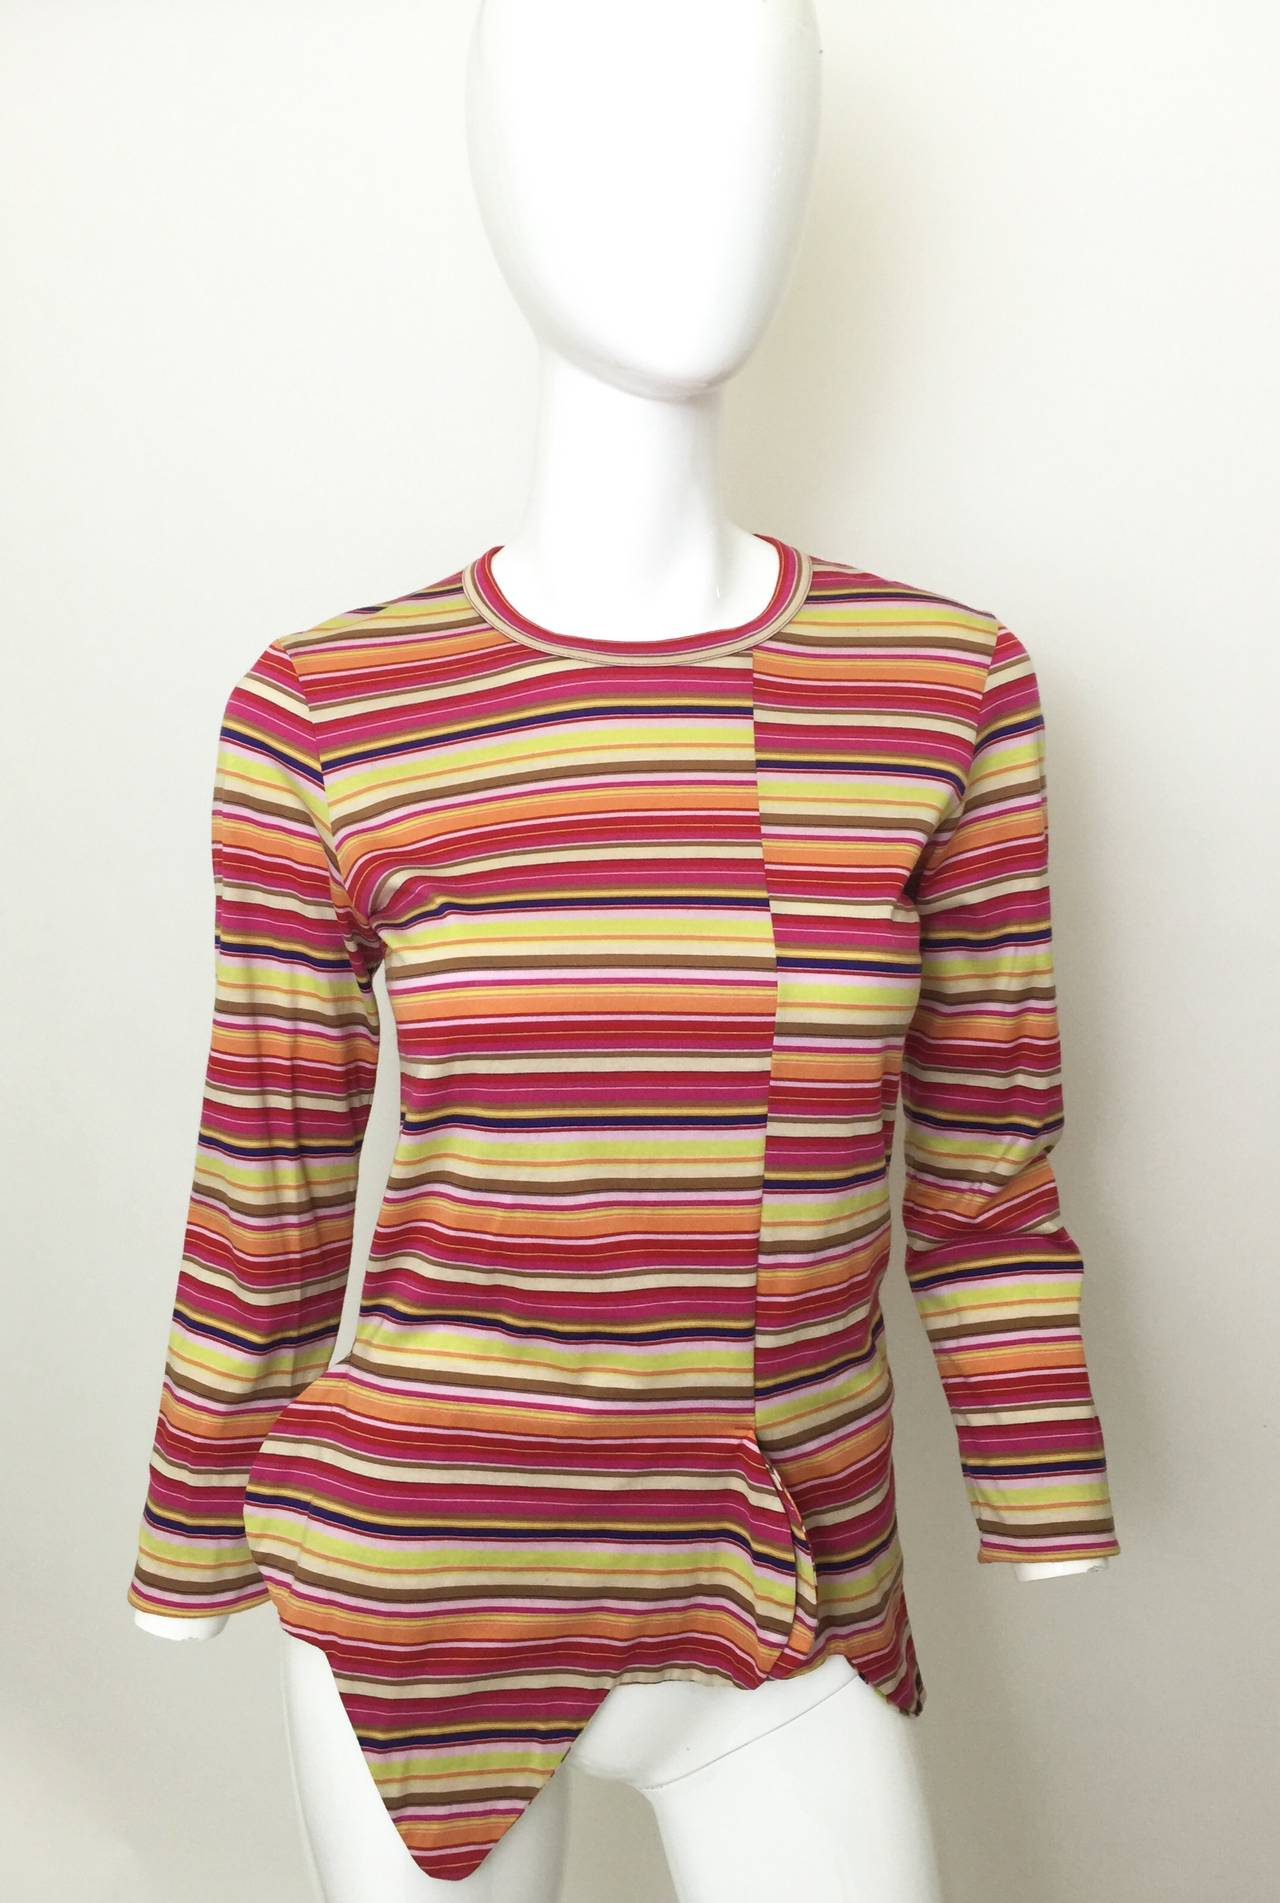 Comme des Garcons multi stripe Shirt 1990's For Sale 1